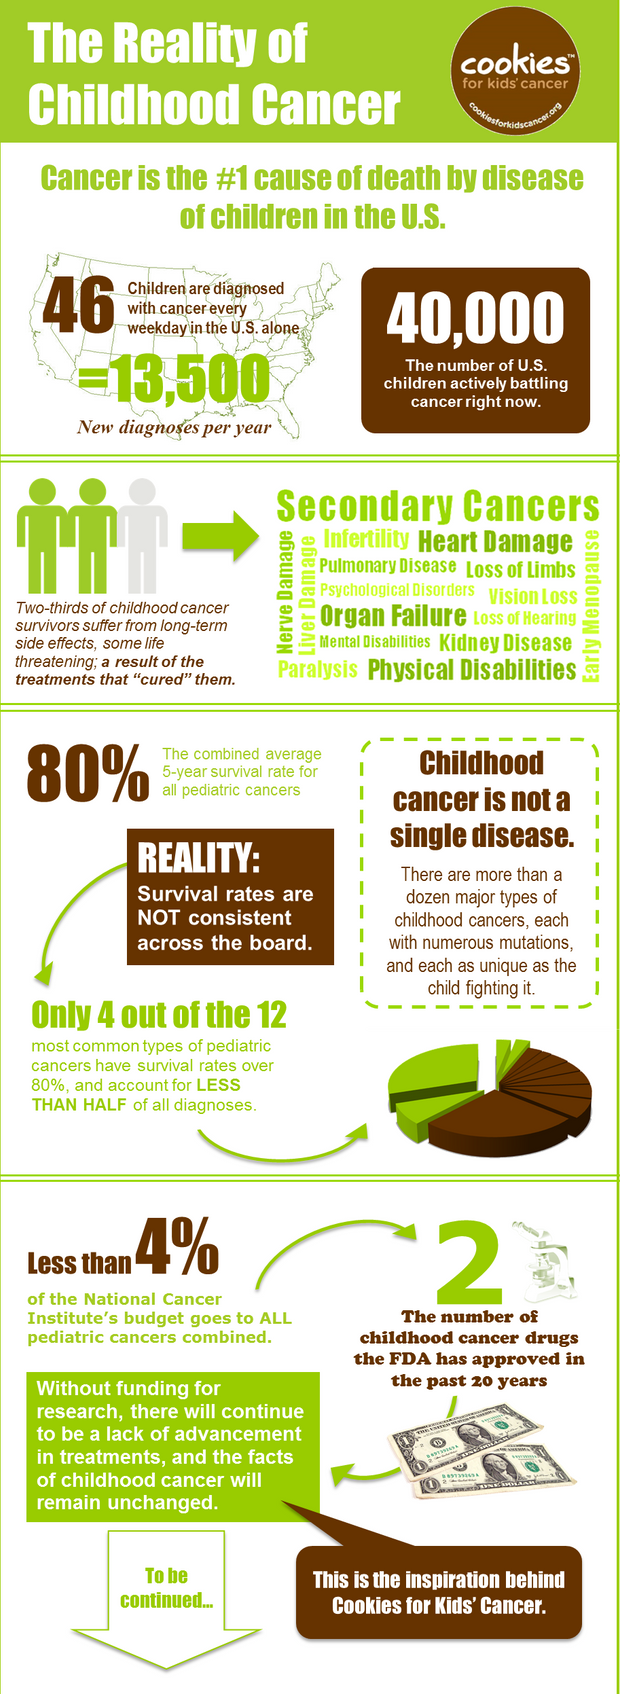 http://www.cookiesforkidscancer.org/v/vspfiles/assets/images/childhood%20cancer%20infographic.png